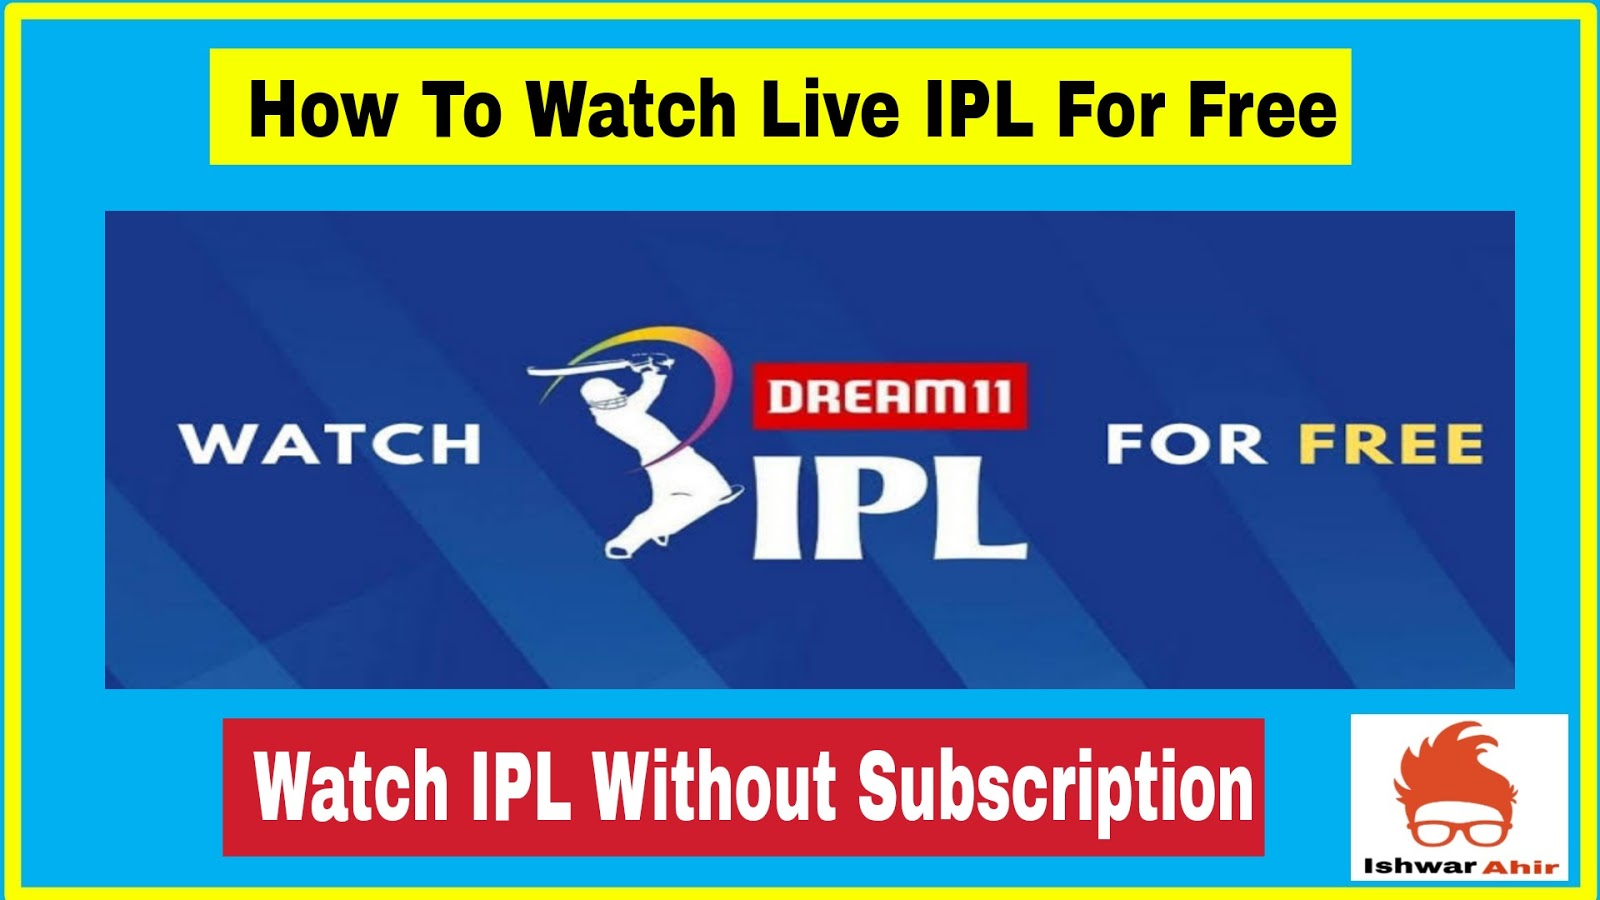 How To Watch Live IPL For Free